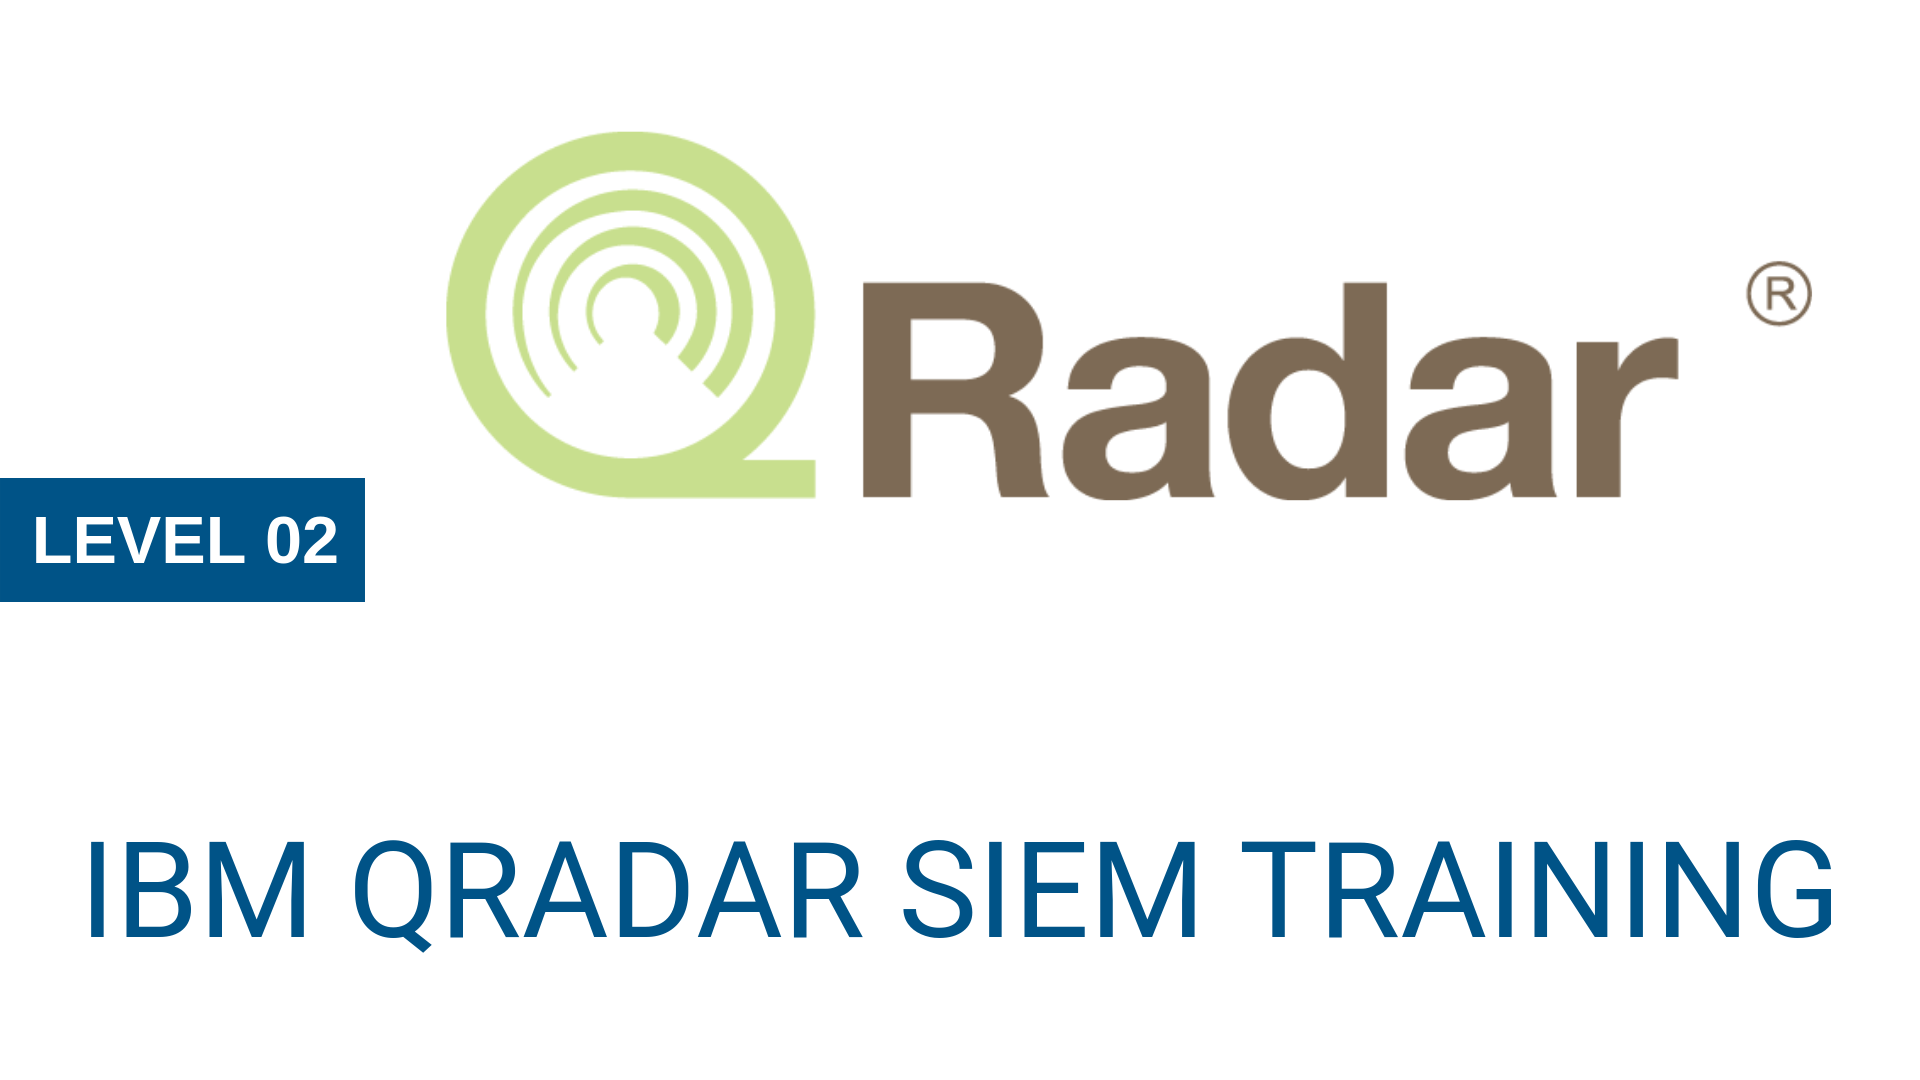 Level 02 - IBM QRadar SIEM Training - CYBERVIE